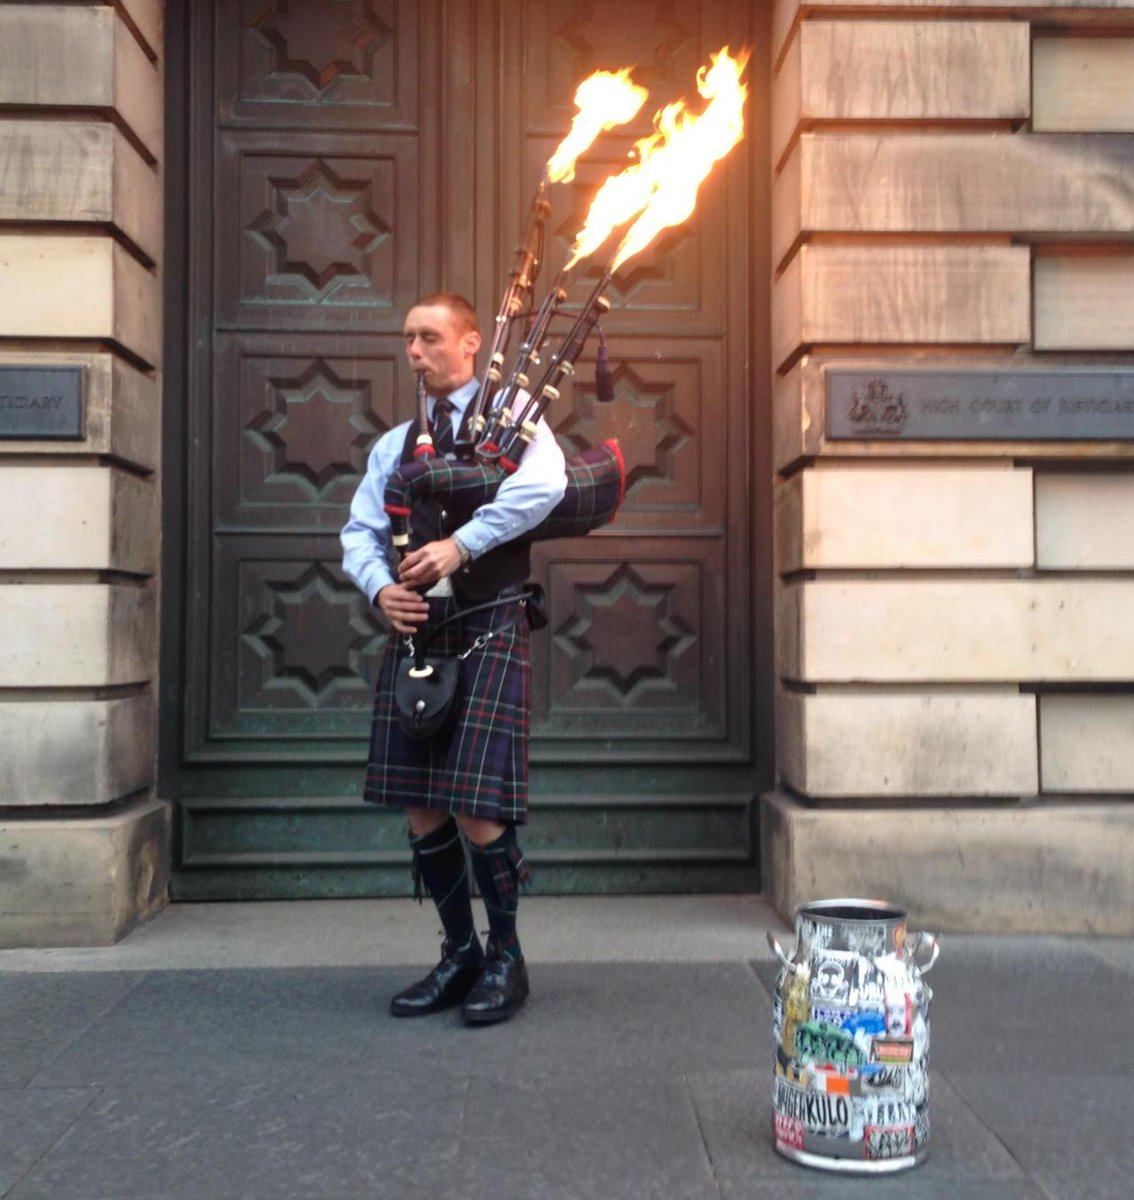 Busker with flamethrower bagpipes on Royal Mile! Making a fortune. http://t.co/wBTqs78mvi